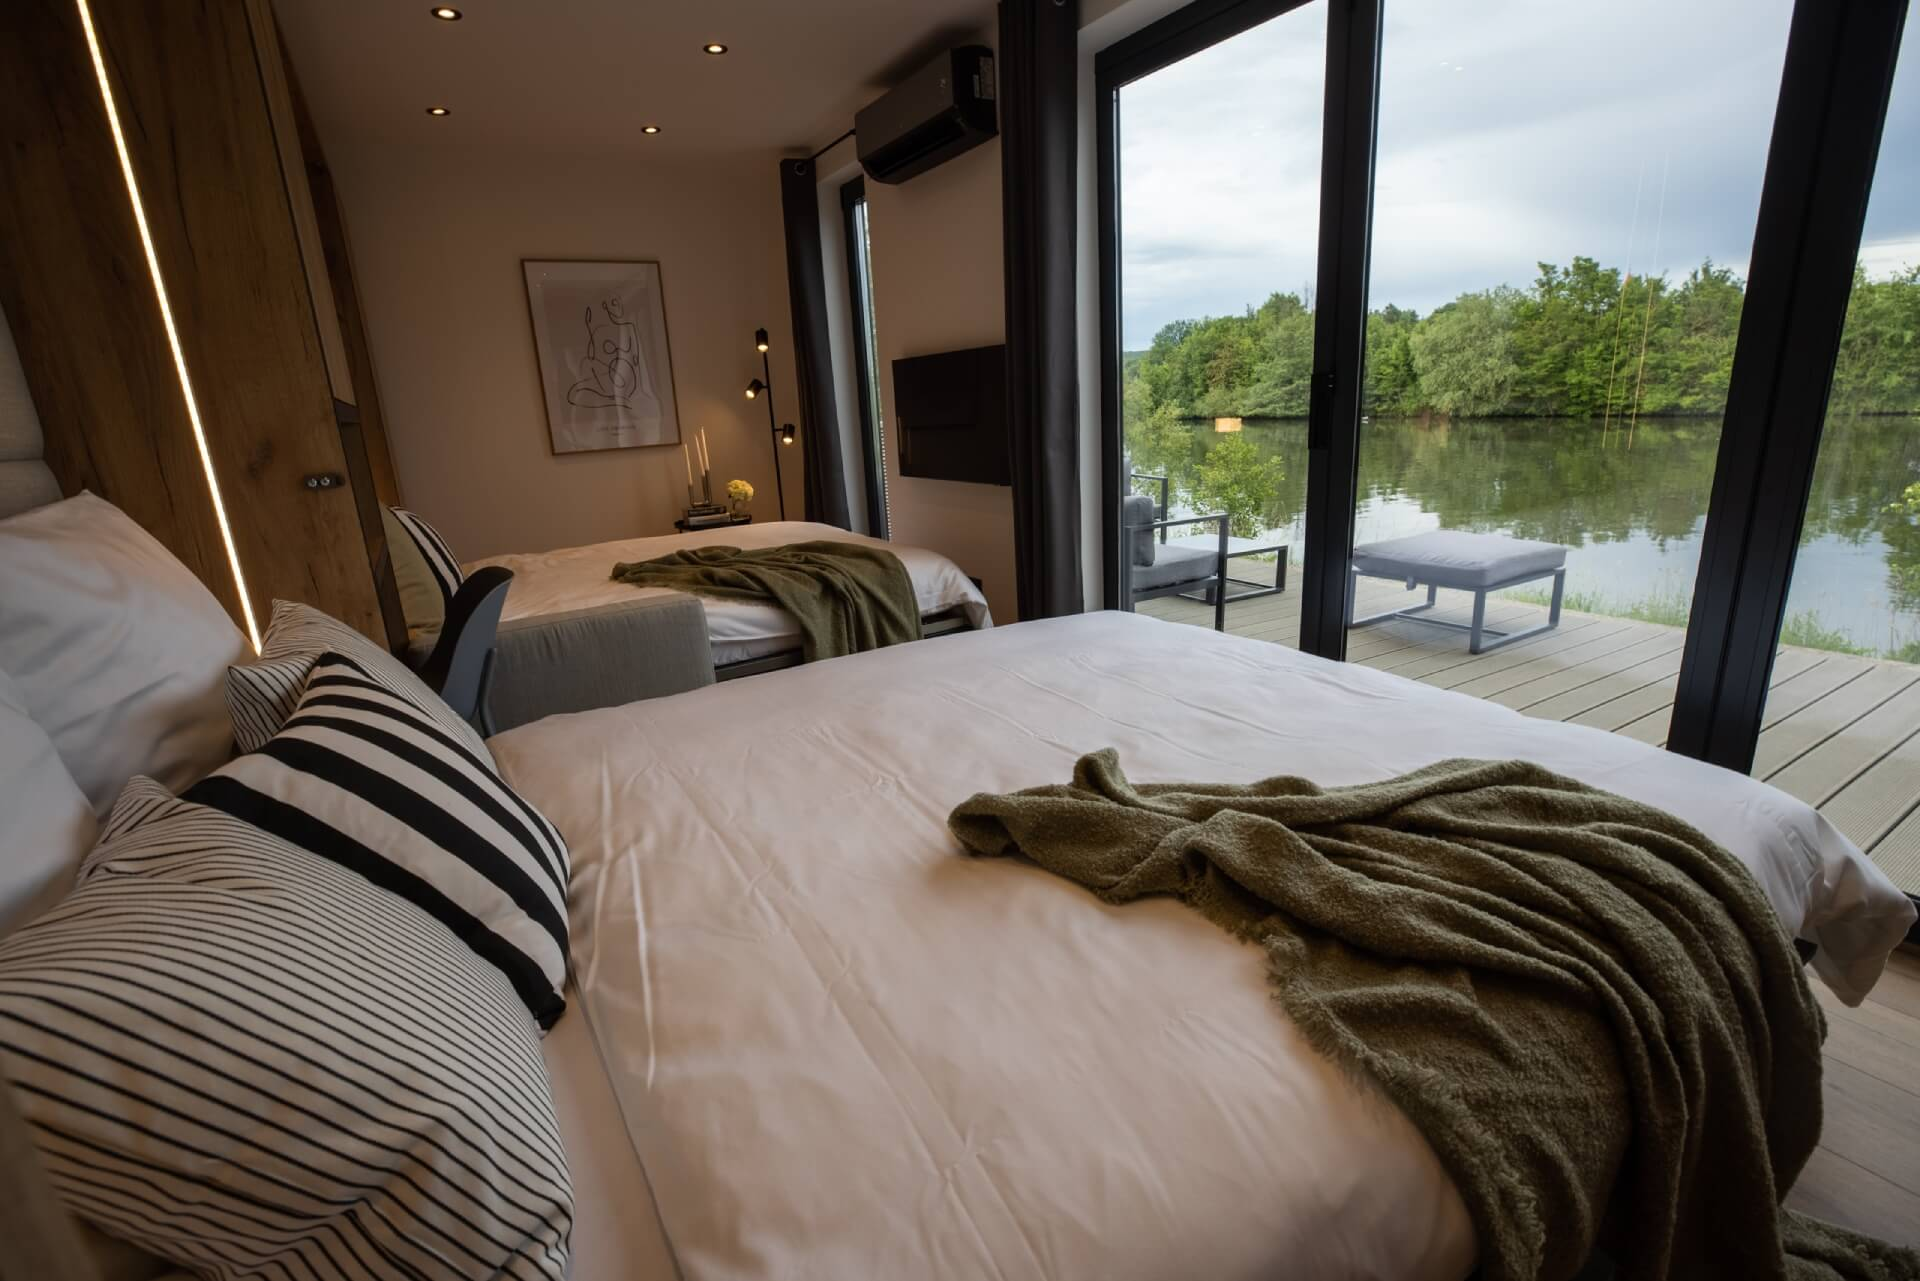 Tiny House BLOXS with beds and a view of the Main River